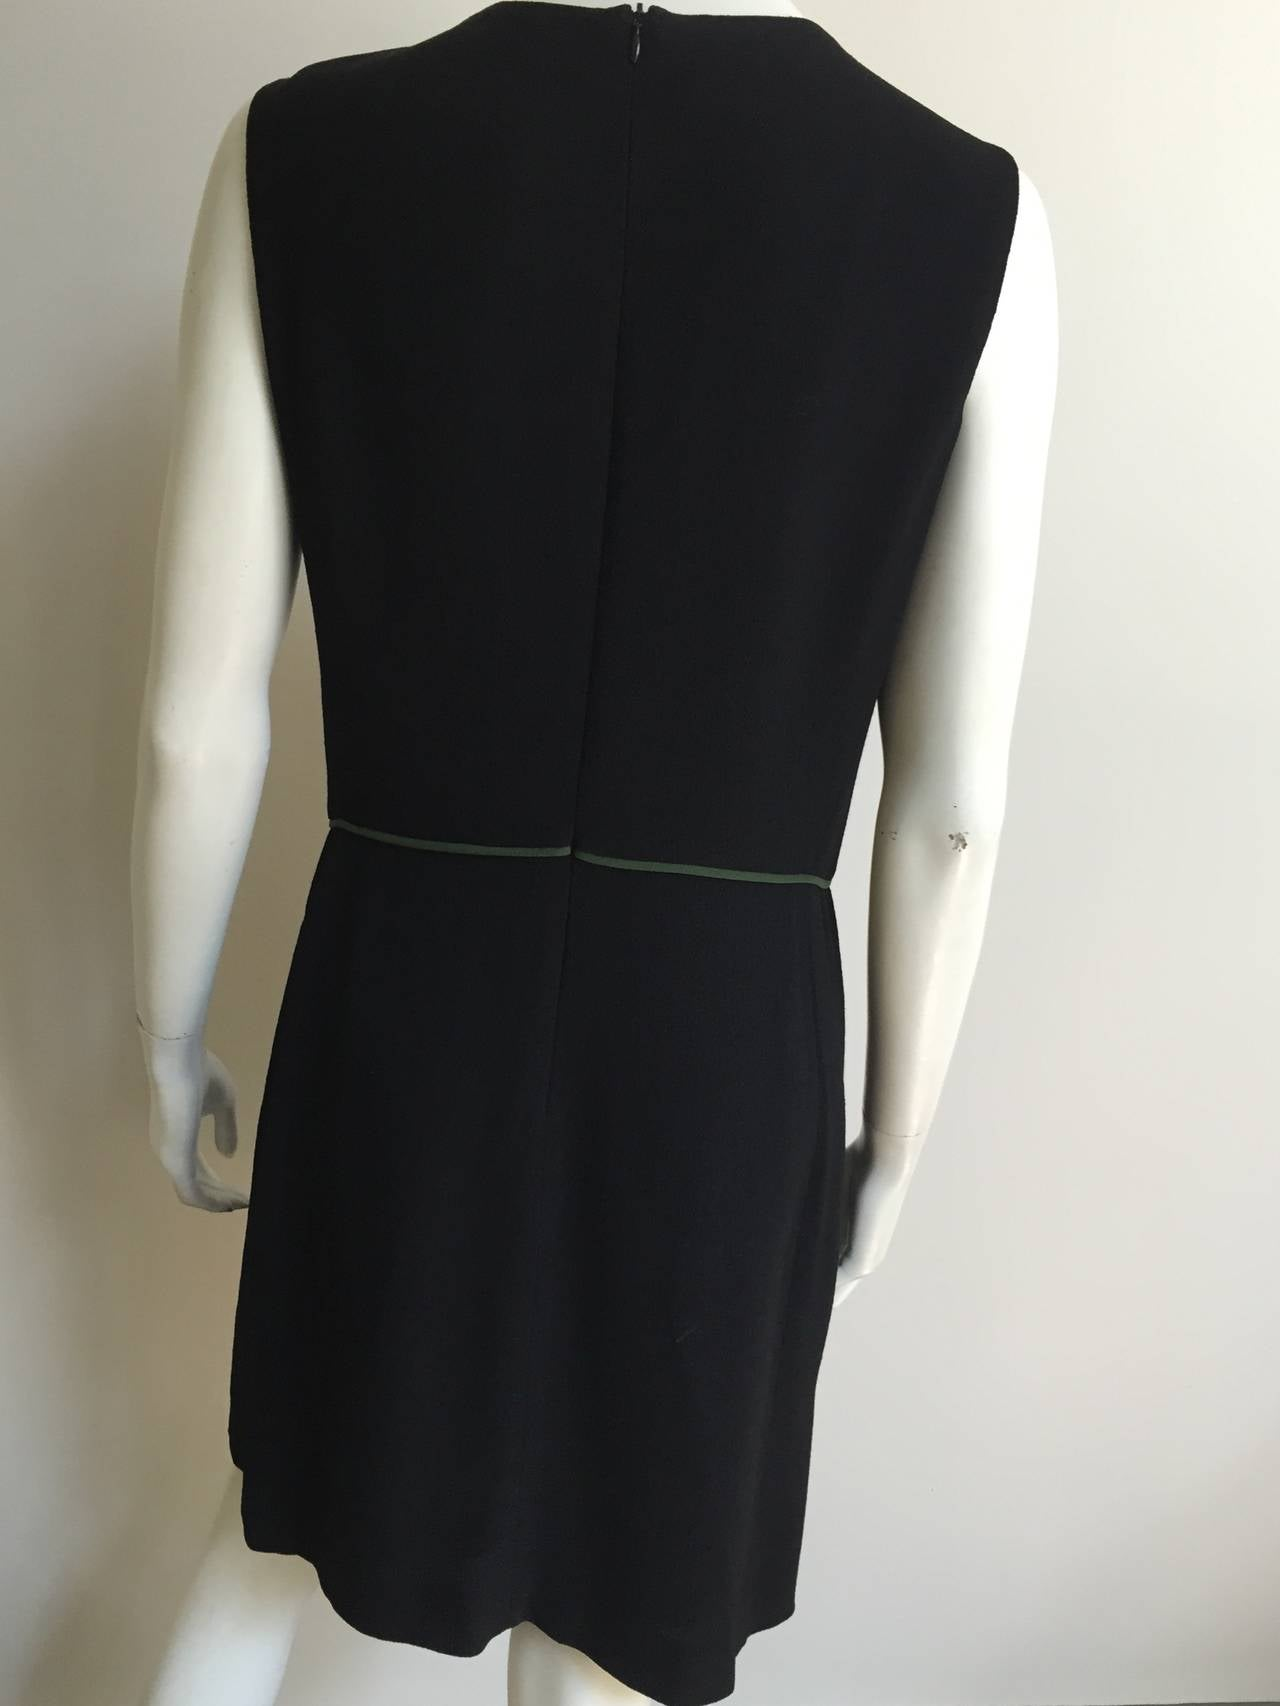 Moschino Black Dress   For Sale 1